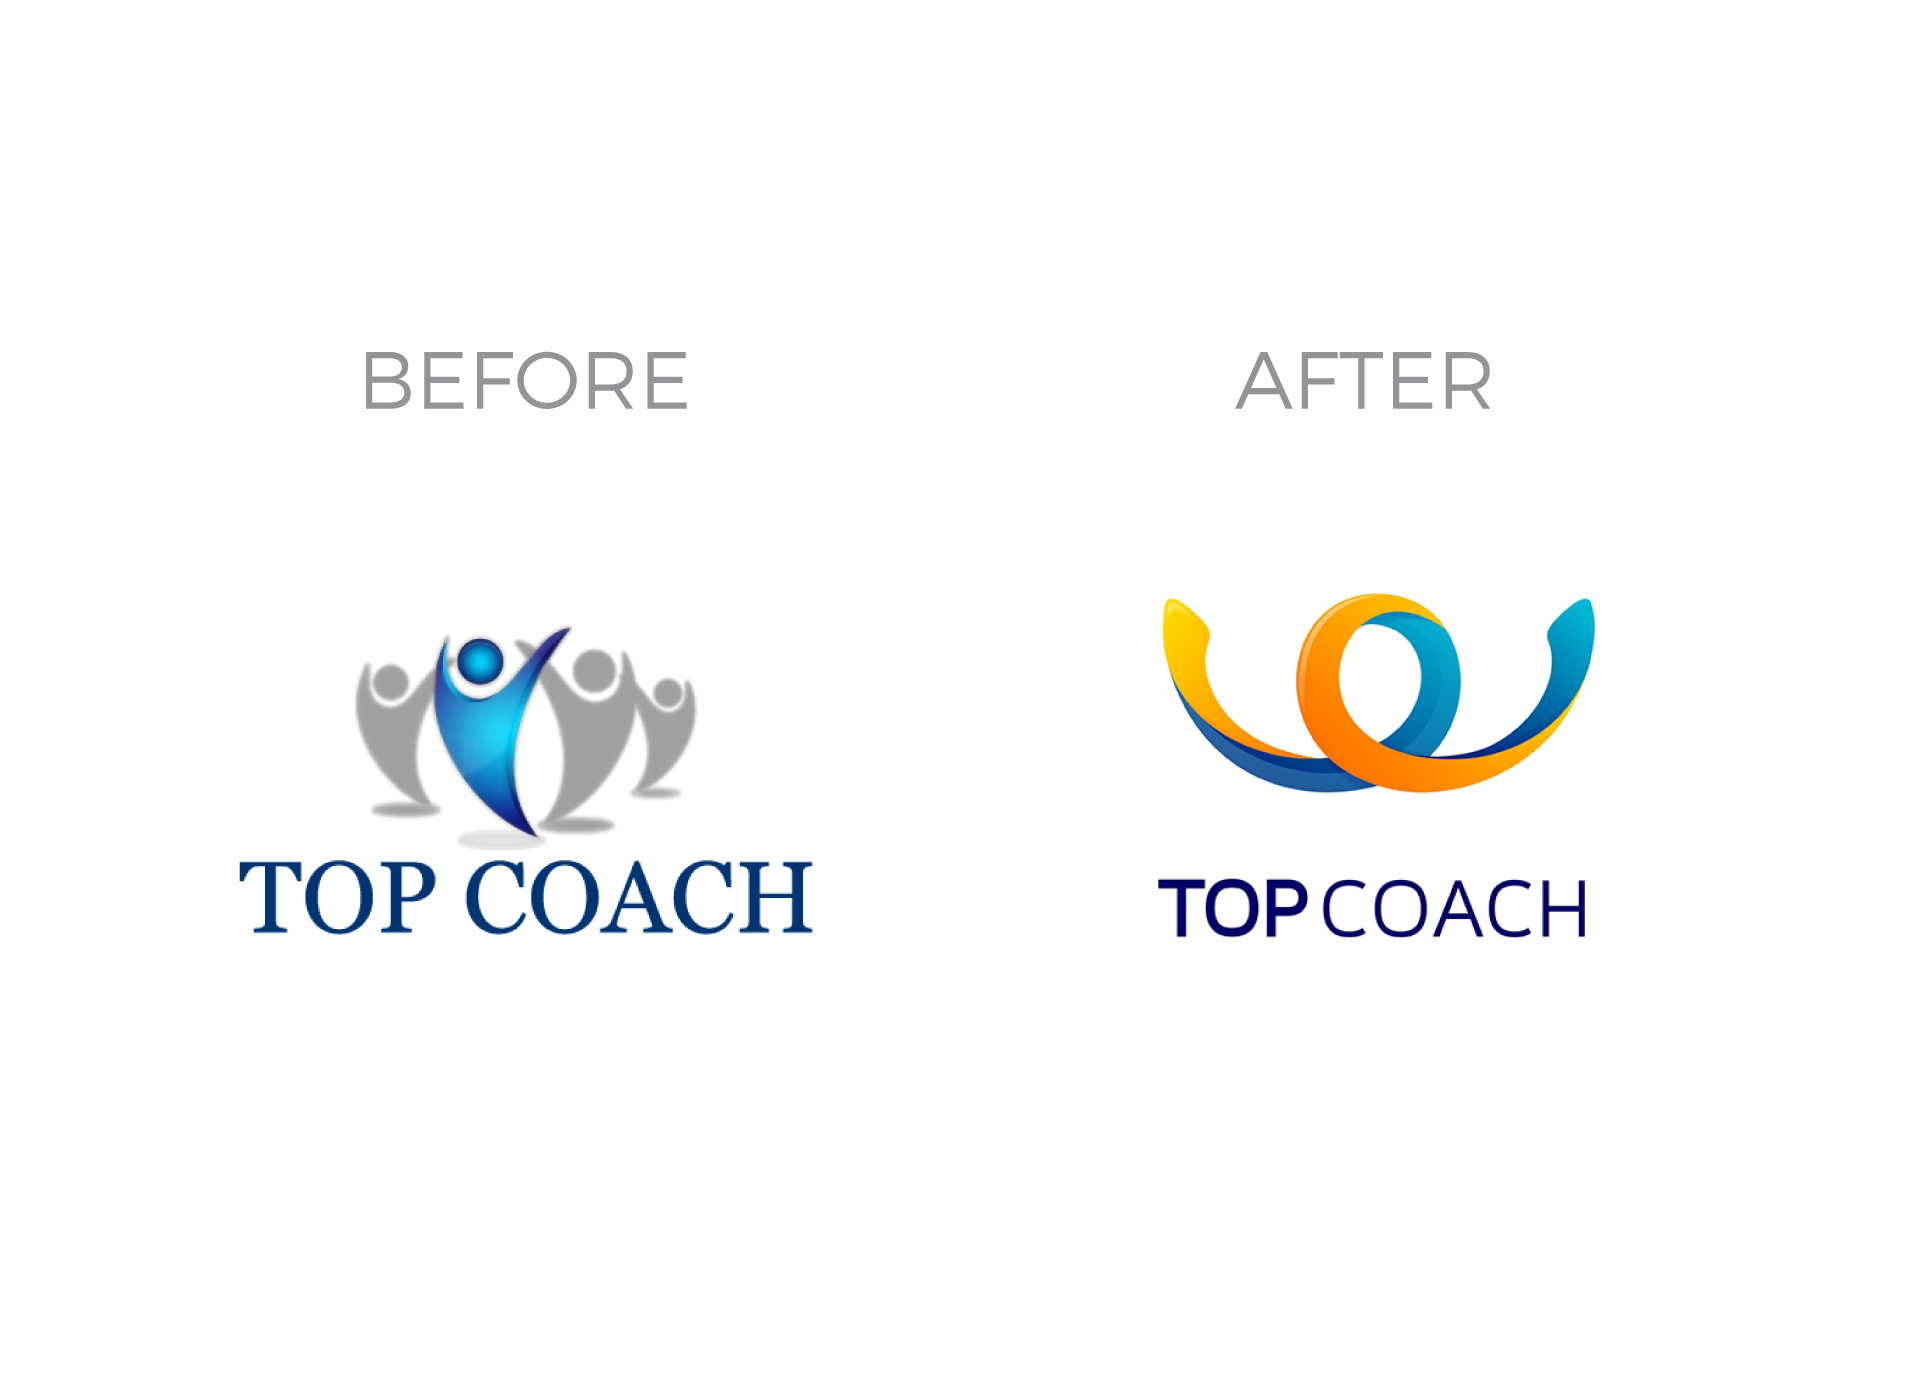 Top Coach portfolio inoveo logo before and after rebranding